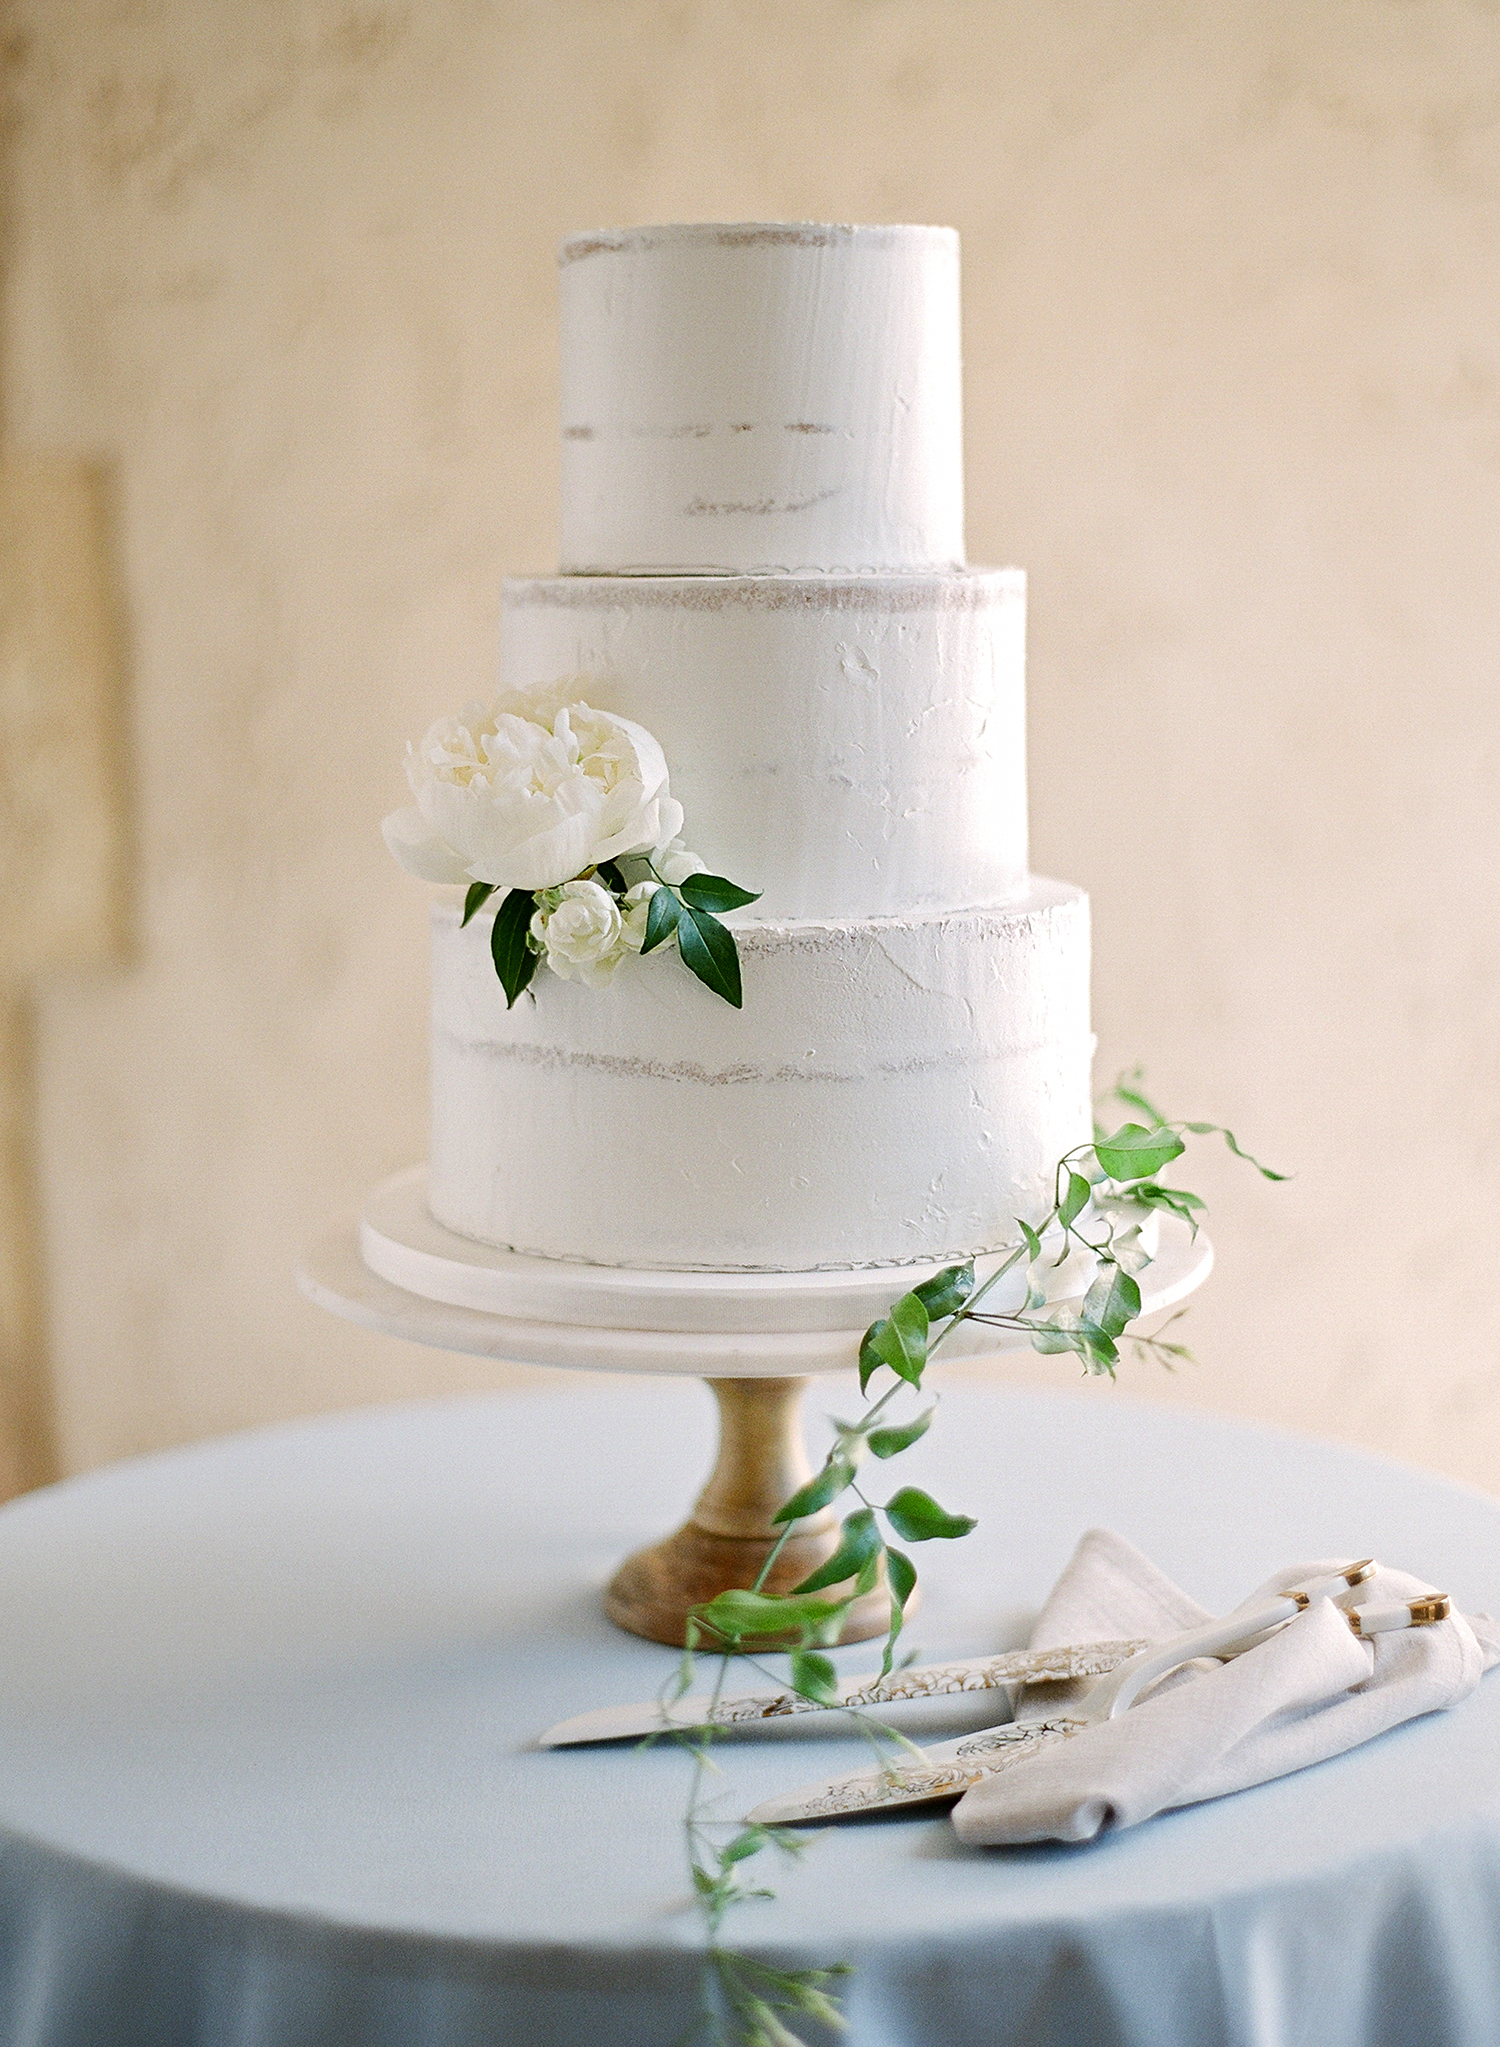 jannicke paal france wedding cake on stand